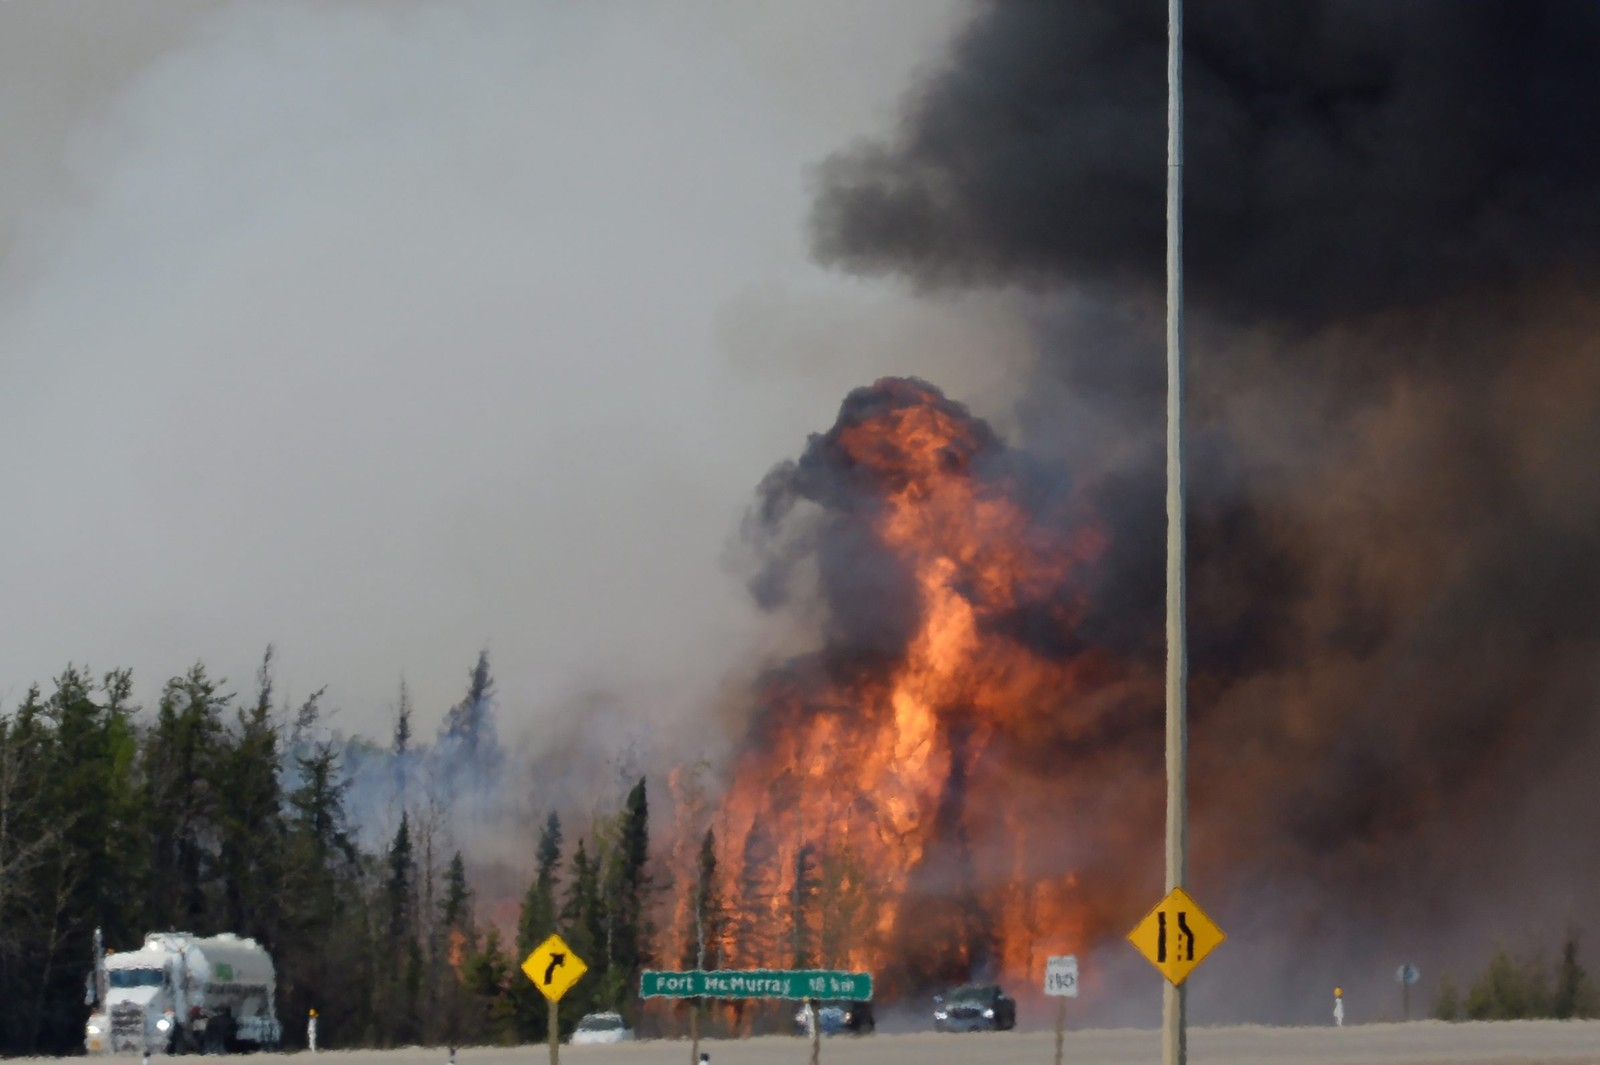 Røyk og flammer langs highway 63, rundt 16 km sør for Fort McMurray i Alberta, Canada.